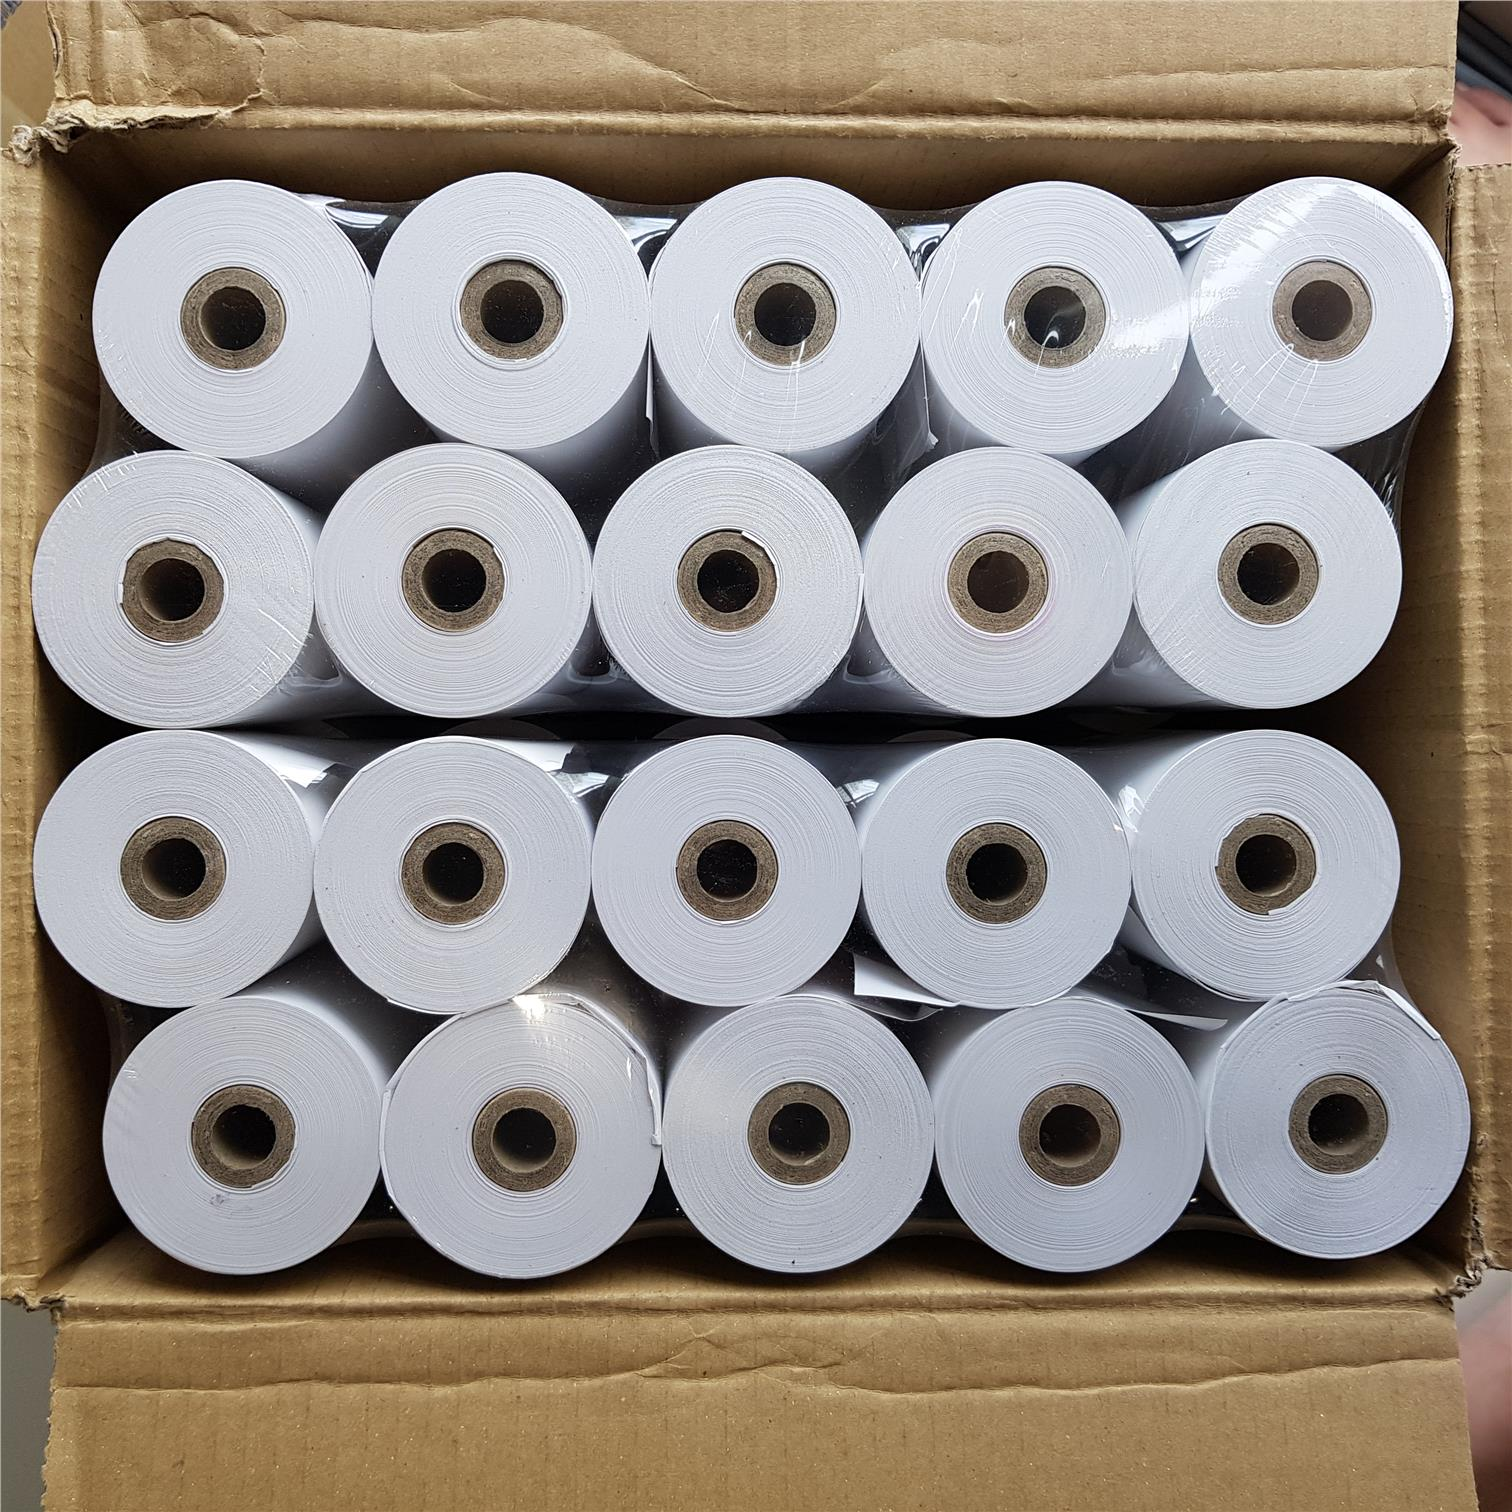 100 Rolls POS Cash Register Thermal Receipt Paper 80 x 60 mm